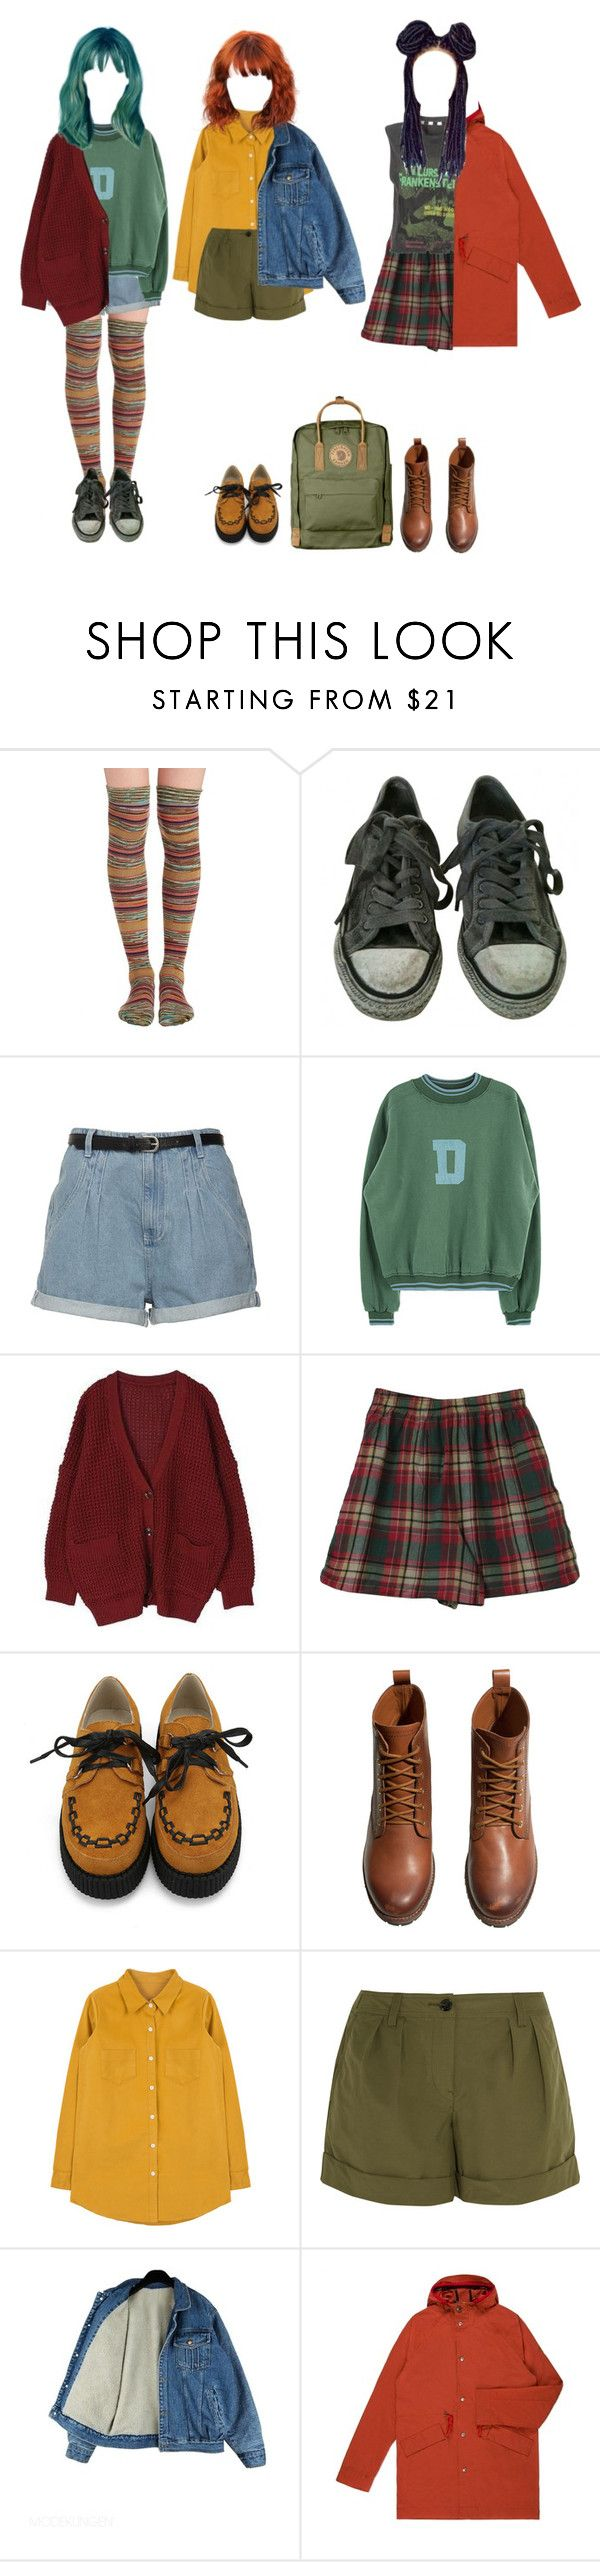 """""""Foresters"""" by forest-life ❤ liked on Polyvore featuring Free People, AllSaints, H&M, Burberry, Paul Smith and Fjällräven"""